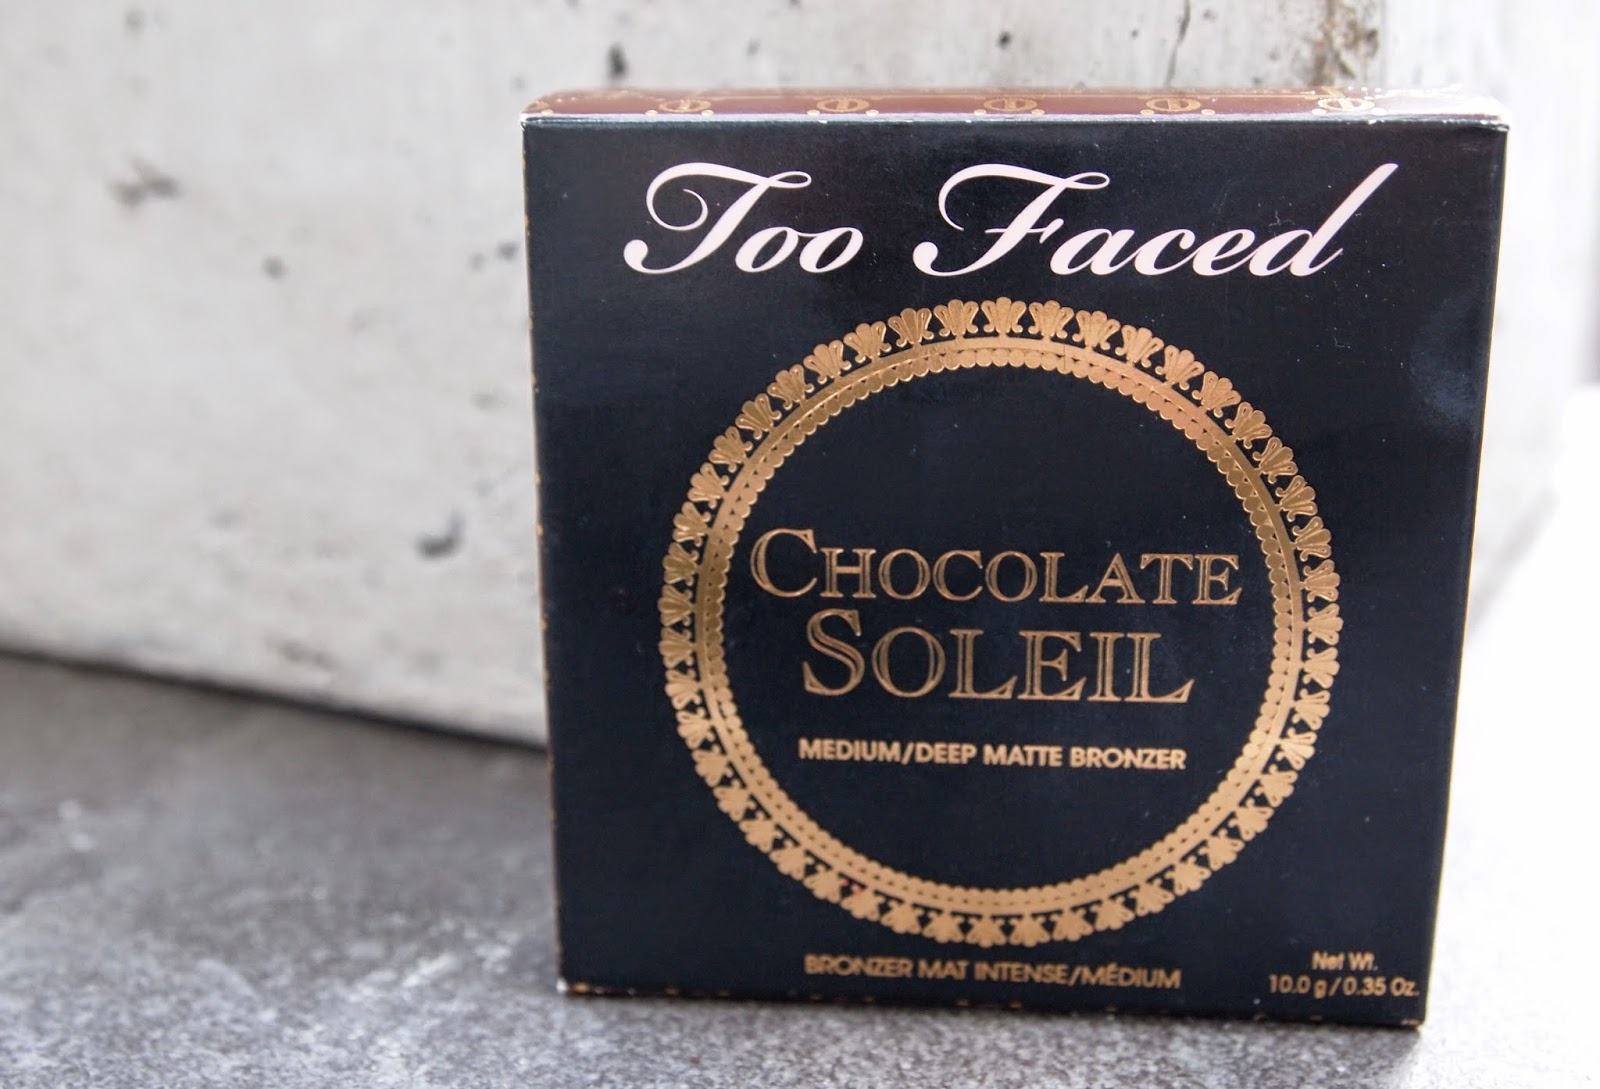 Chocolate Soleil fra Too Faced